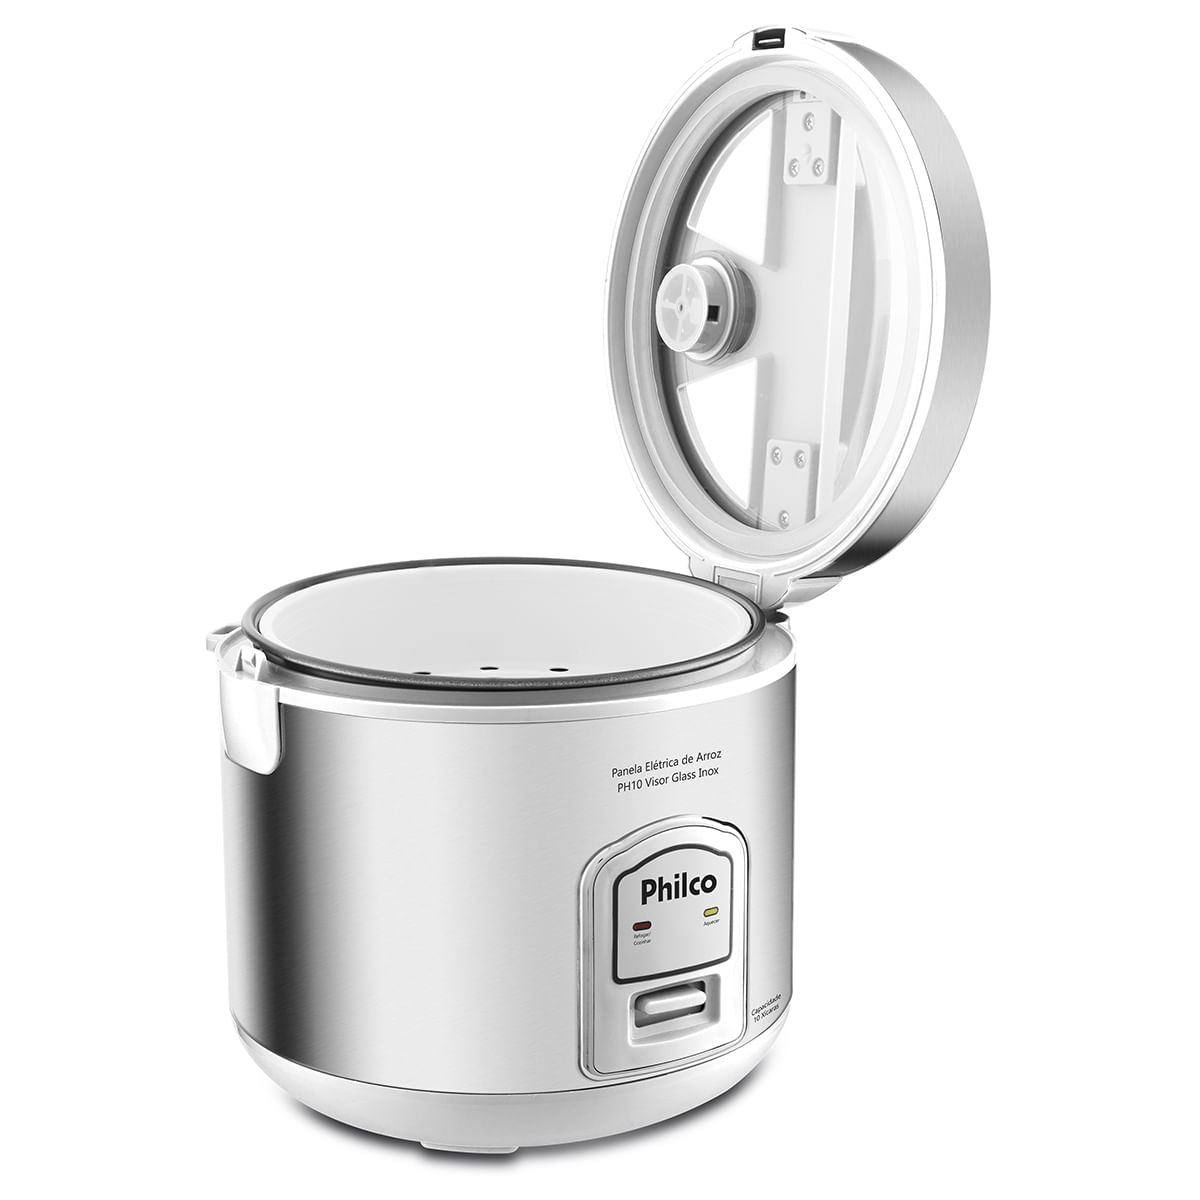 Panela de Arroz Philco 10 Xícaras PH10B Visor Glass Inox 127V